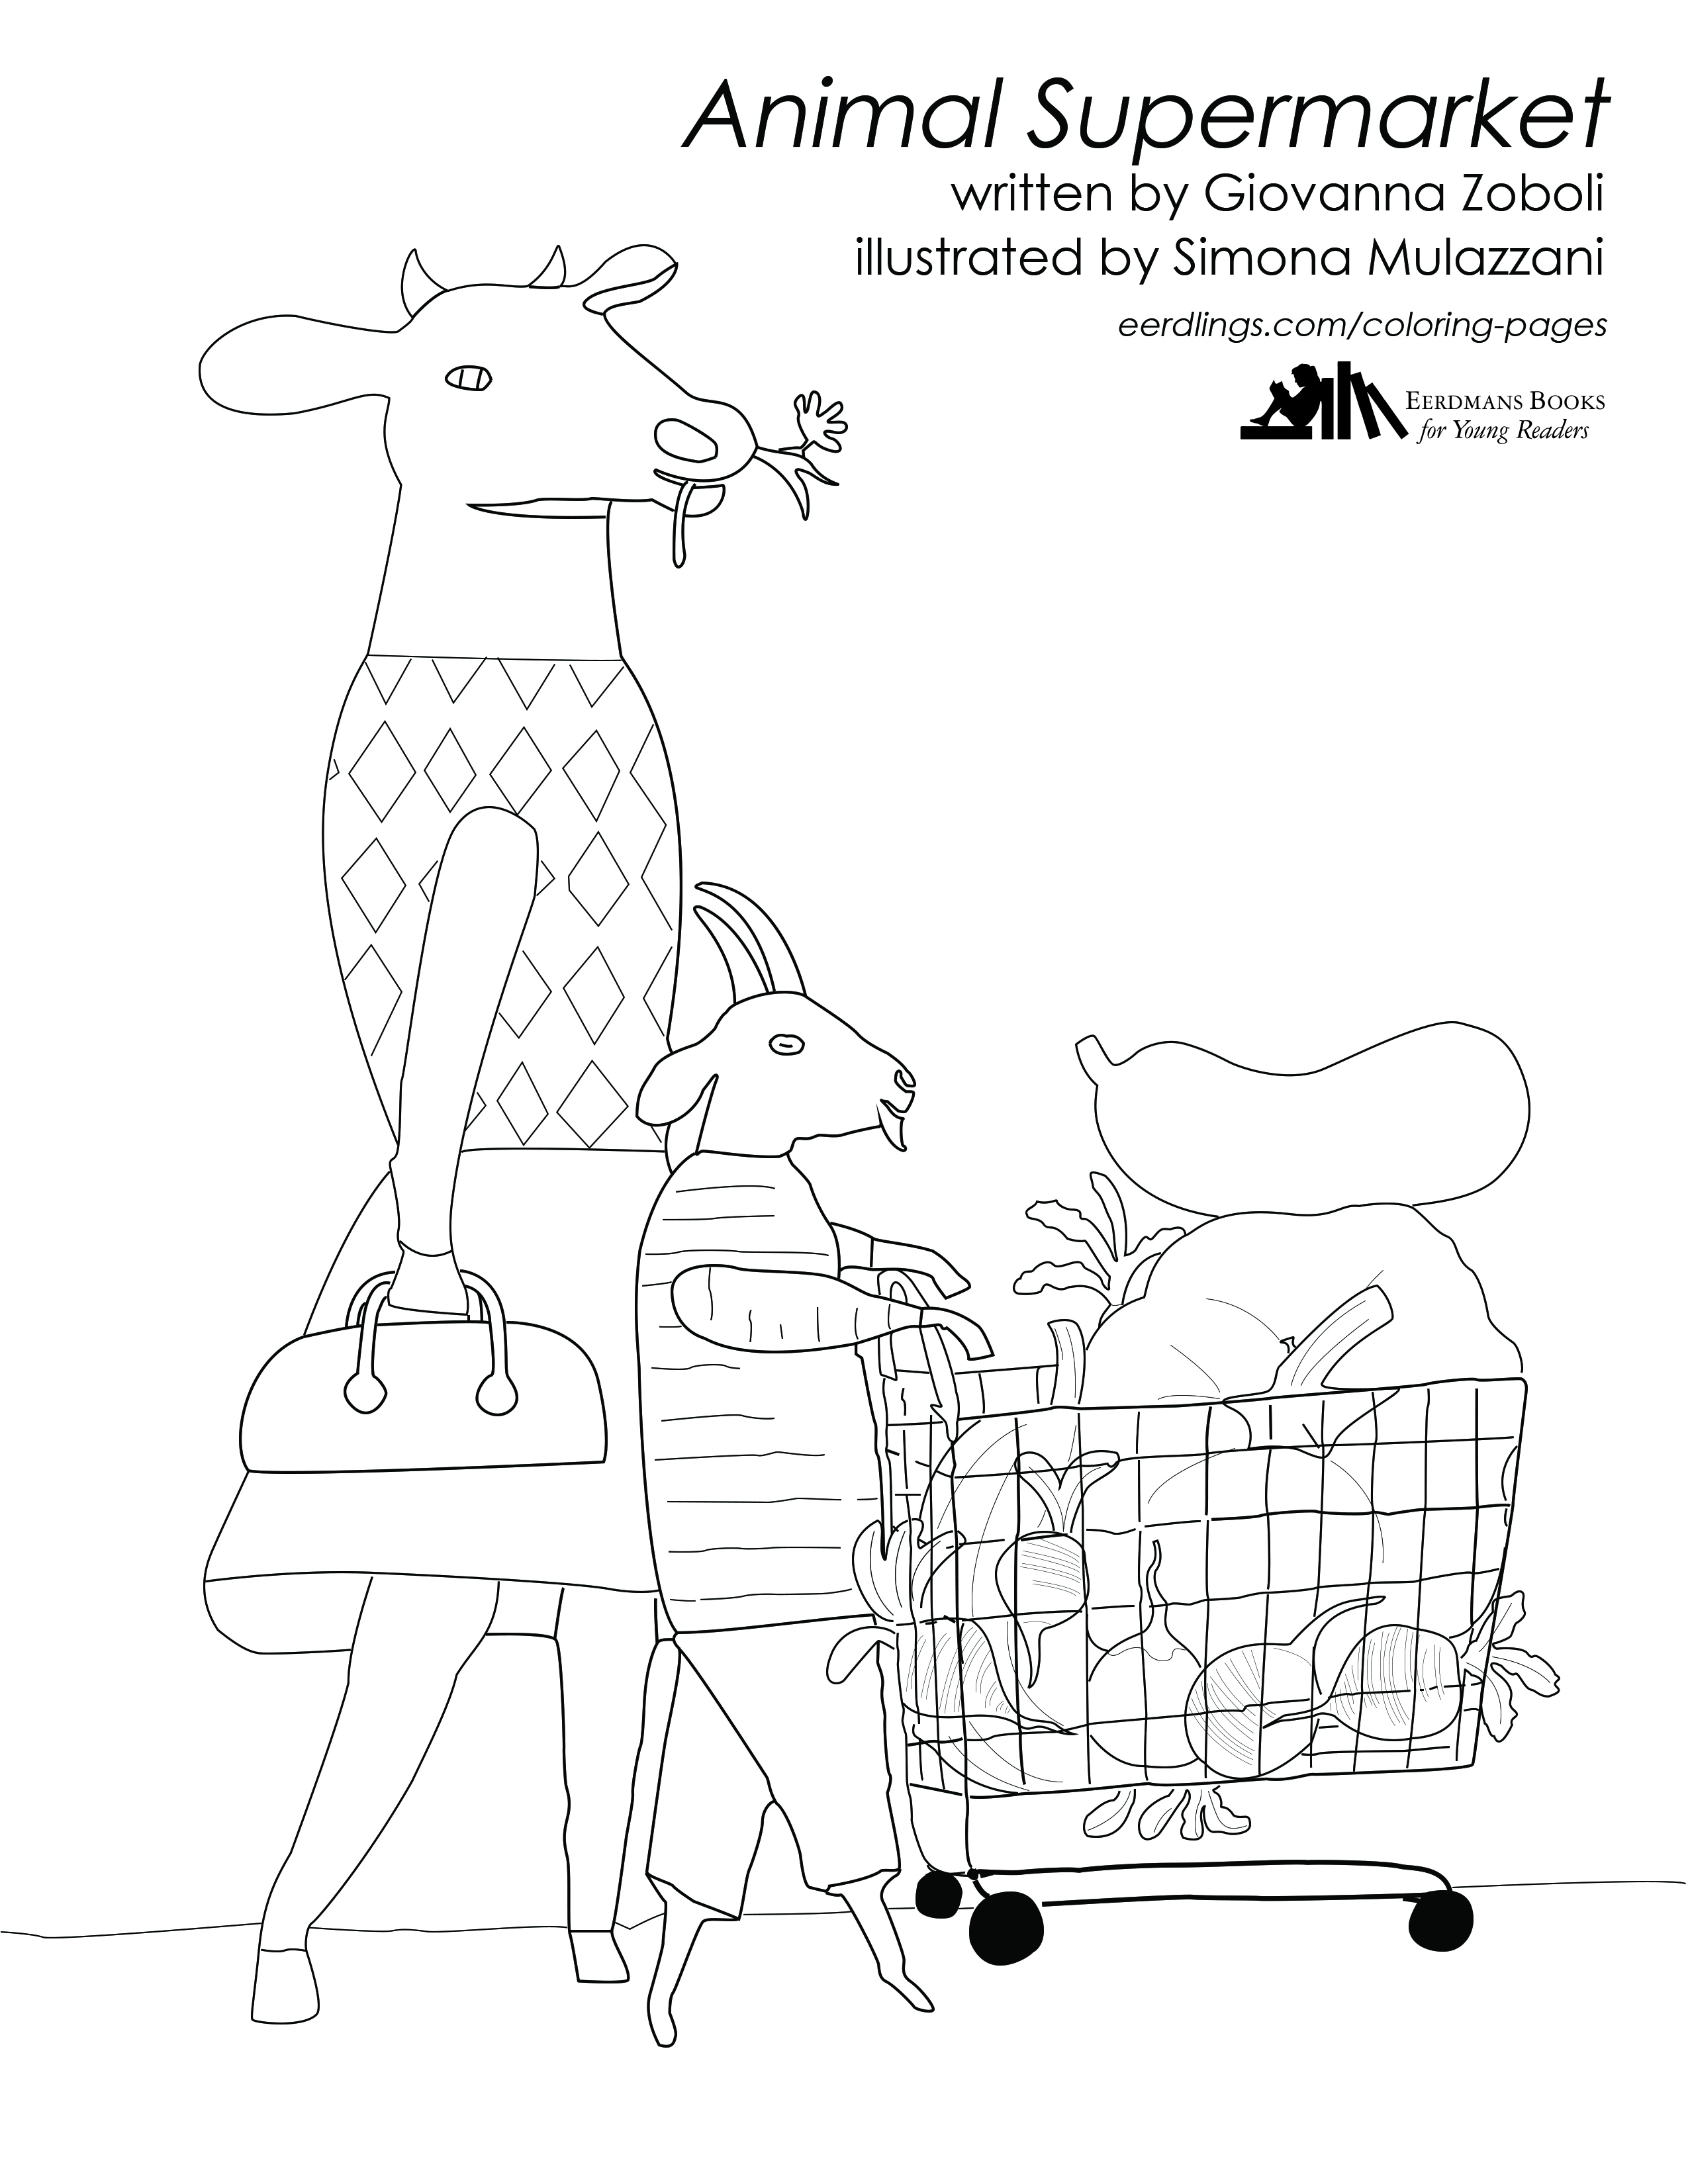 Animal Supermarket coloring page